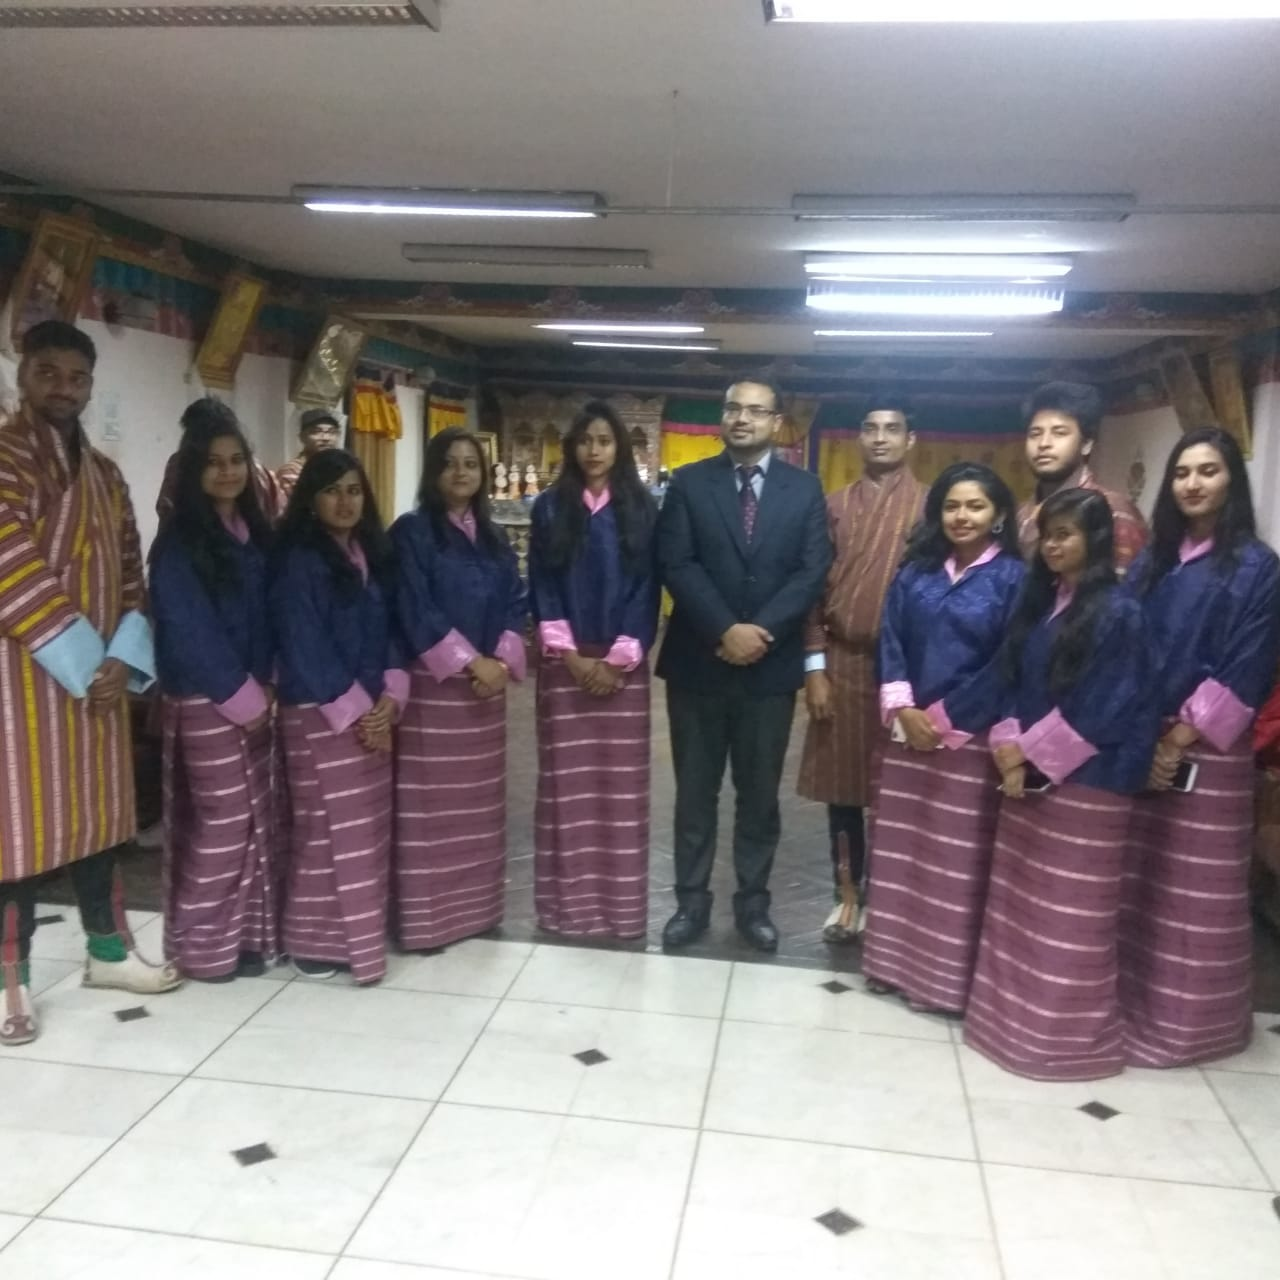 BHUTAN TRIP:STUDENTS INTERACTED WITH THE ART & CULTURE OF BHUTAN